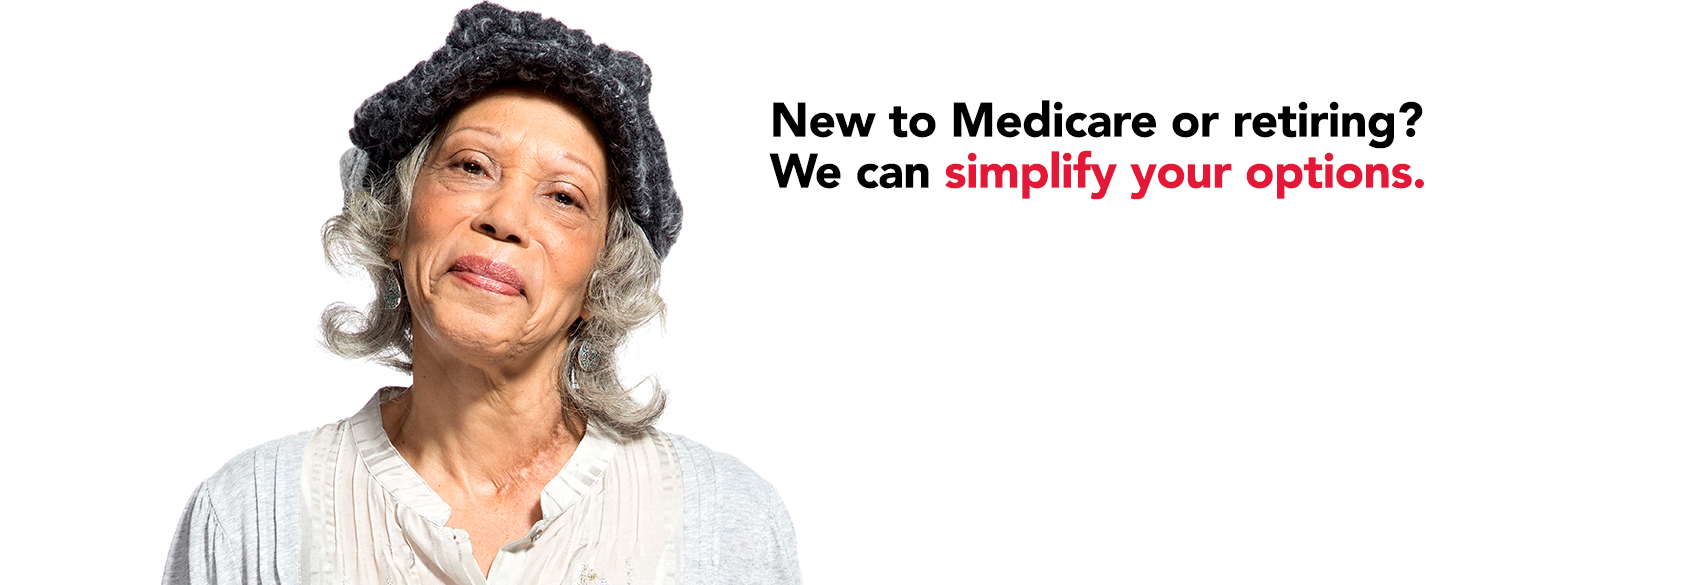 New to Medicare or retiring? We can simplify your options